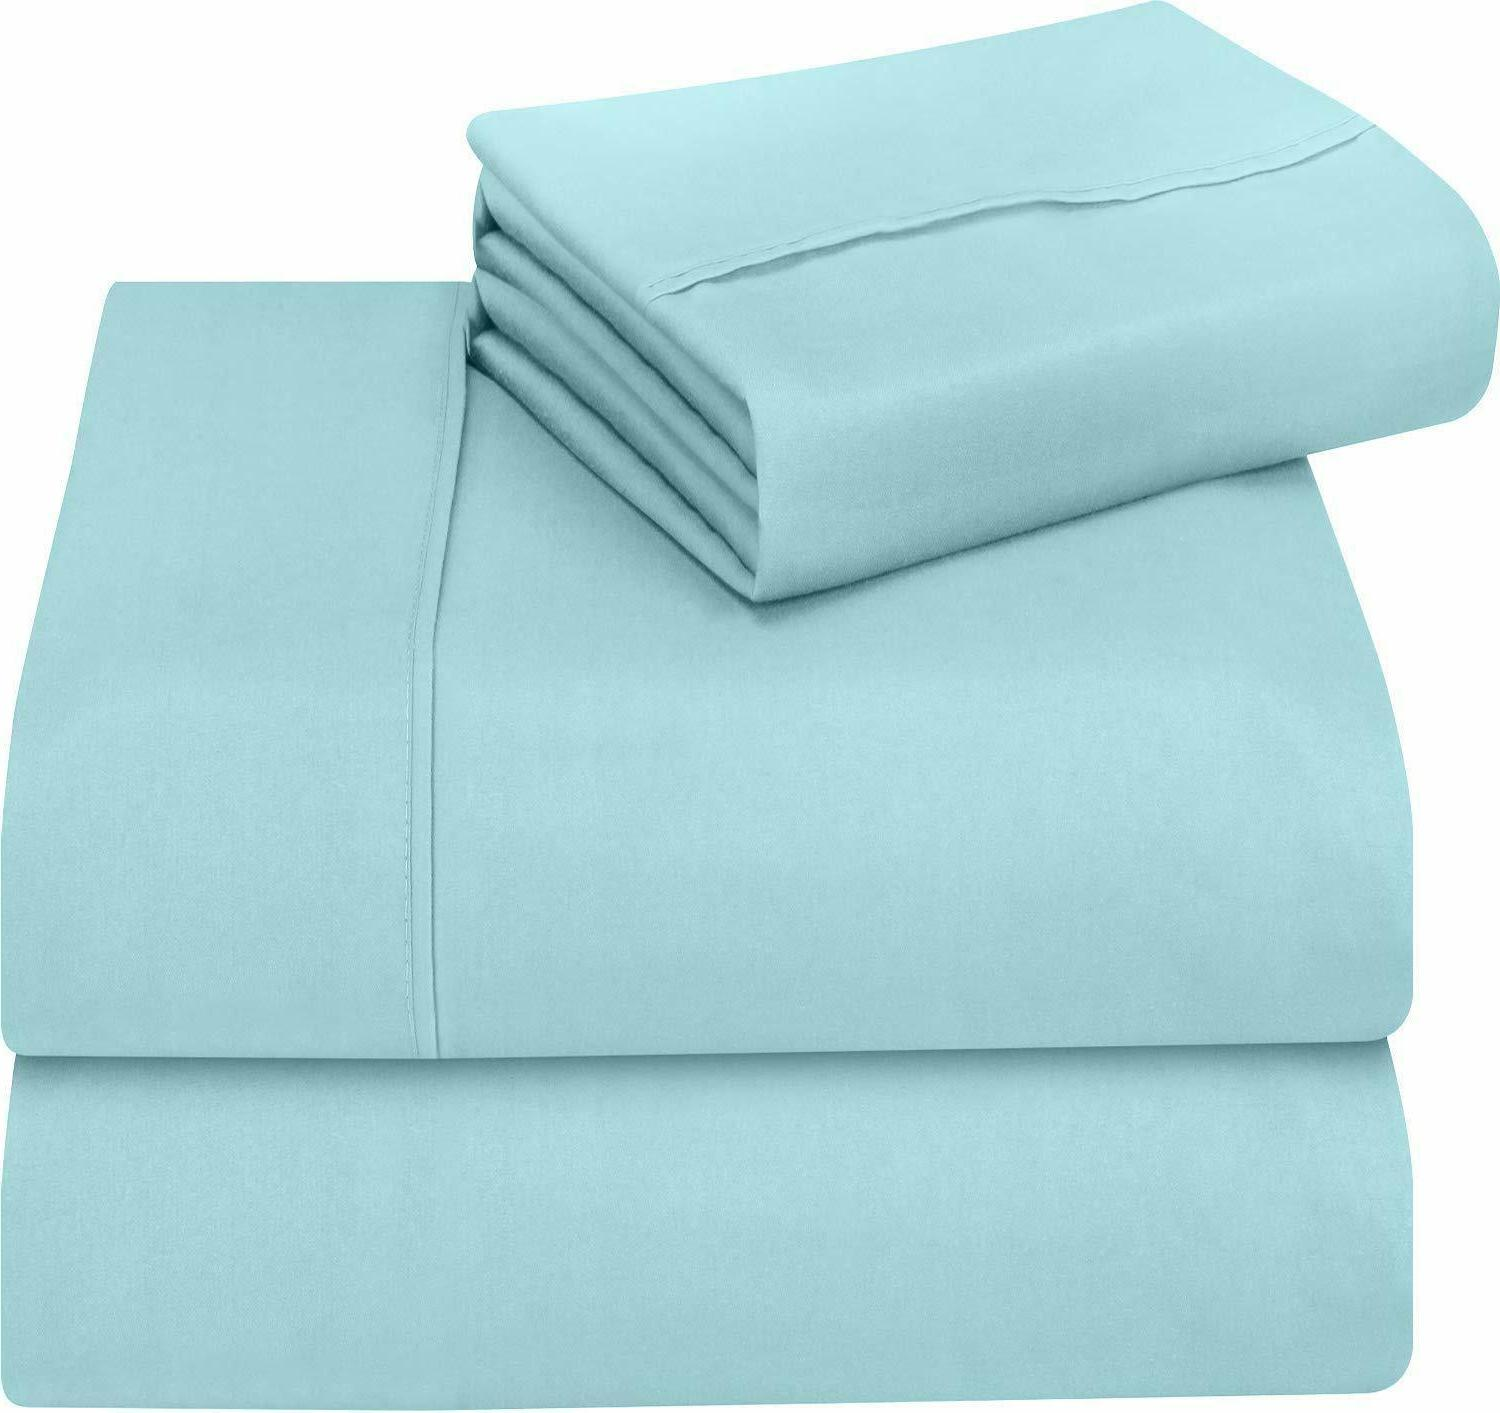 Soft Piece Bed Sheet with Pillow Bedding